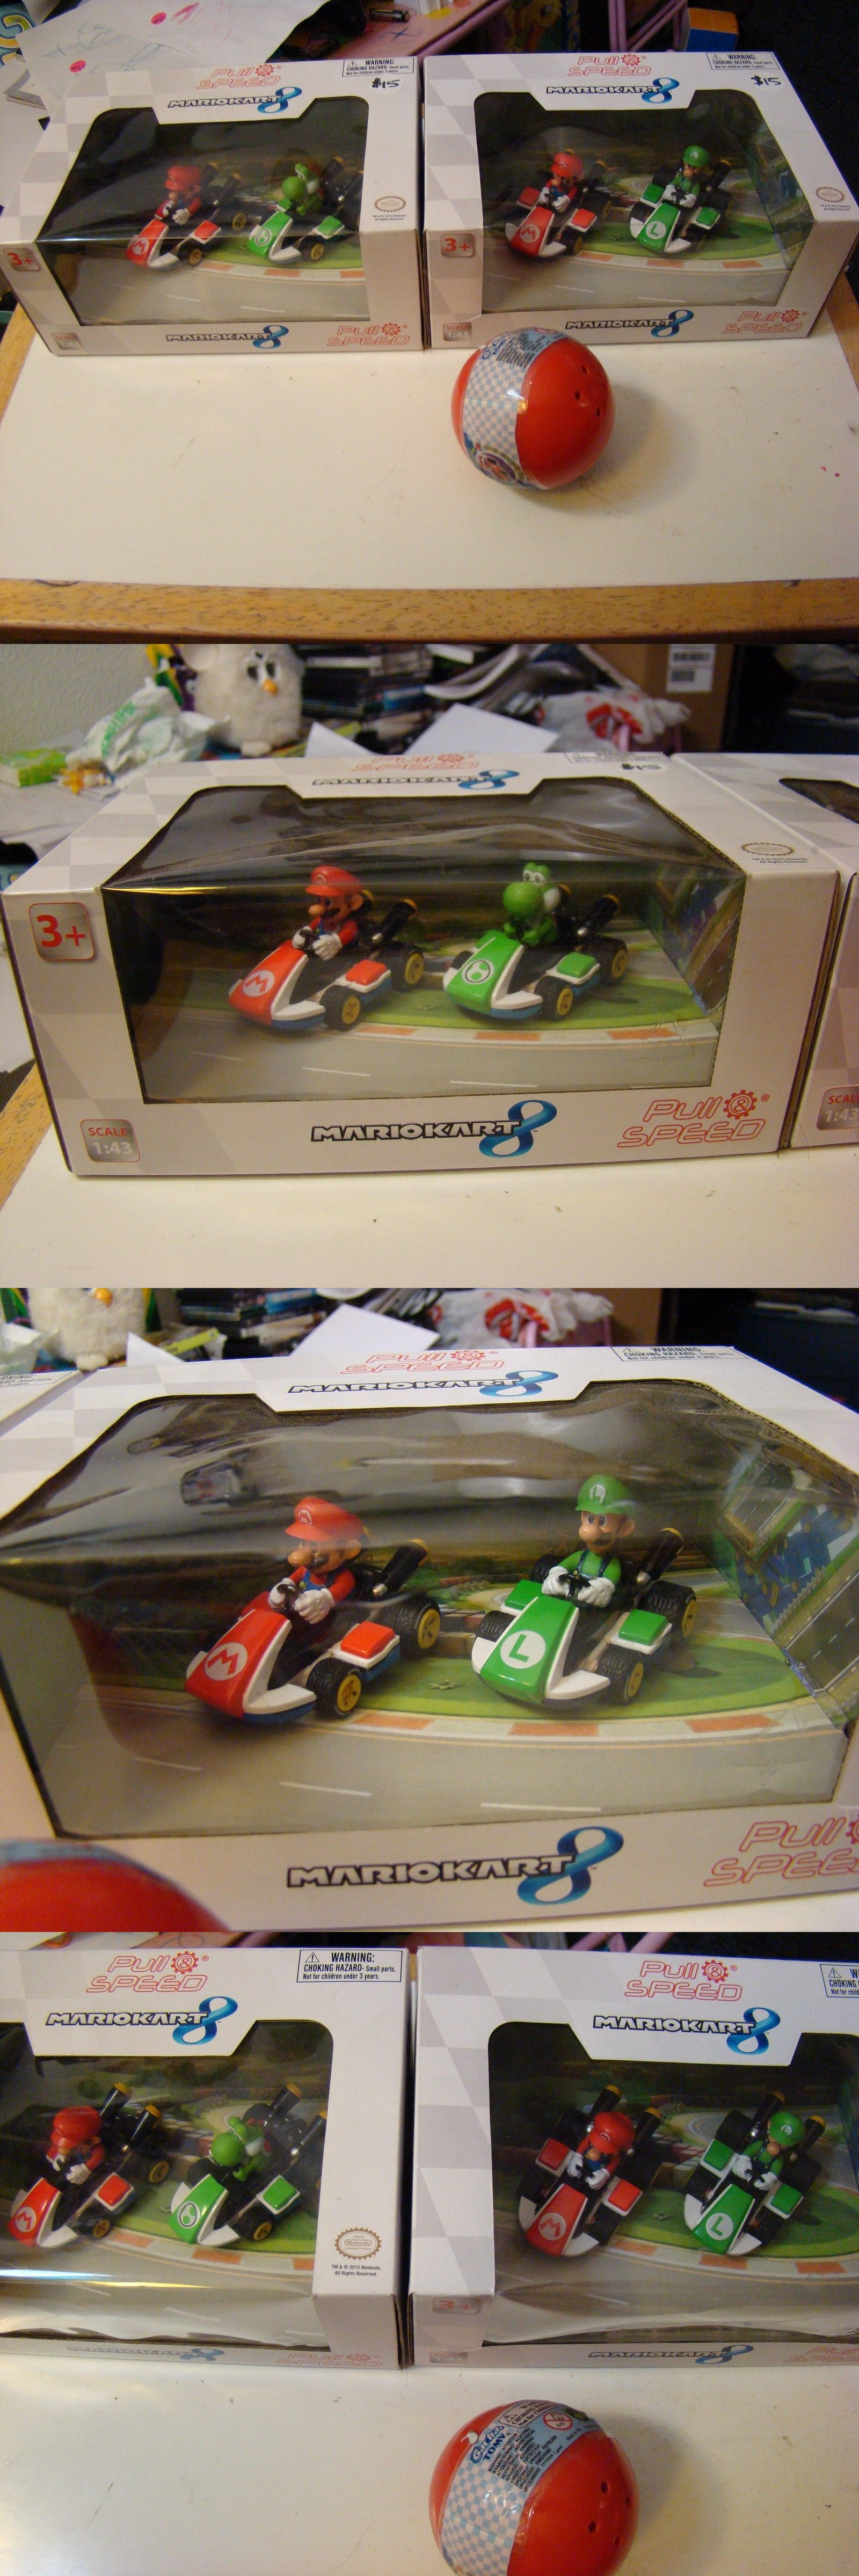 Mario kart 8 for sale - 1970 Now 152936 Mario Kart 8 Pull Speed Mario Yoshi And Mario Luigi Nintendo